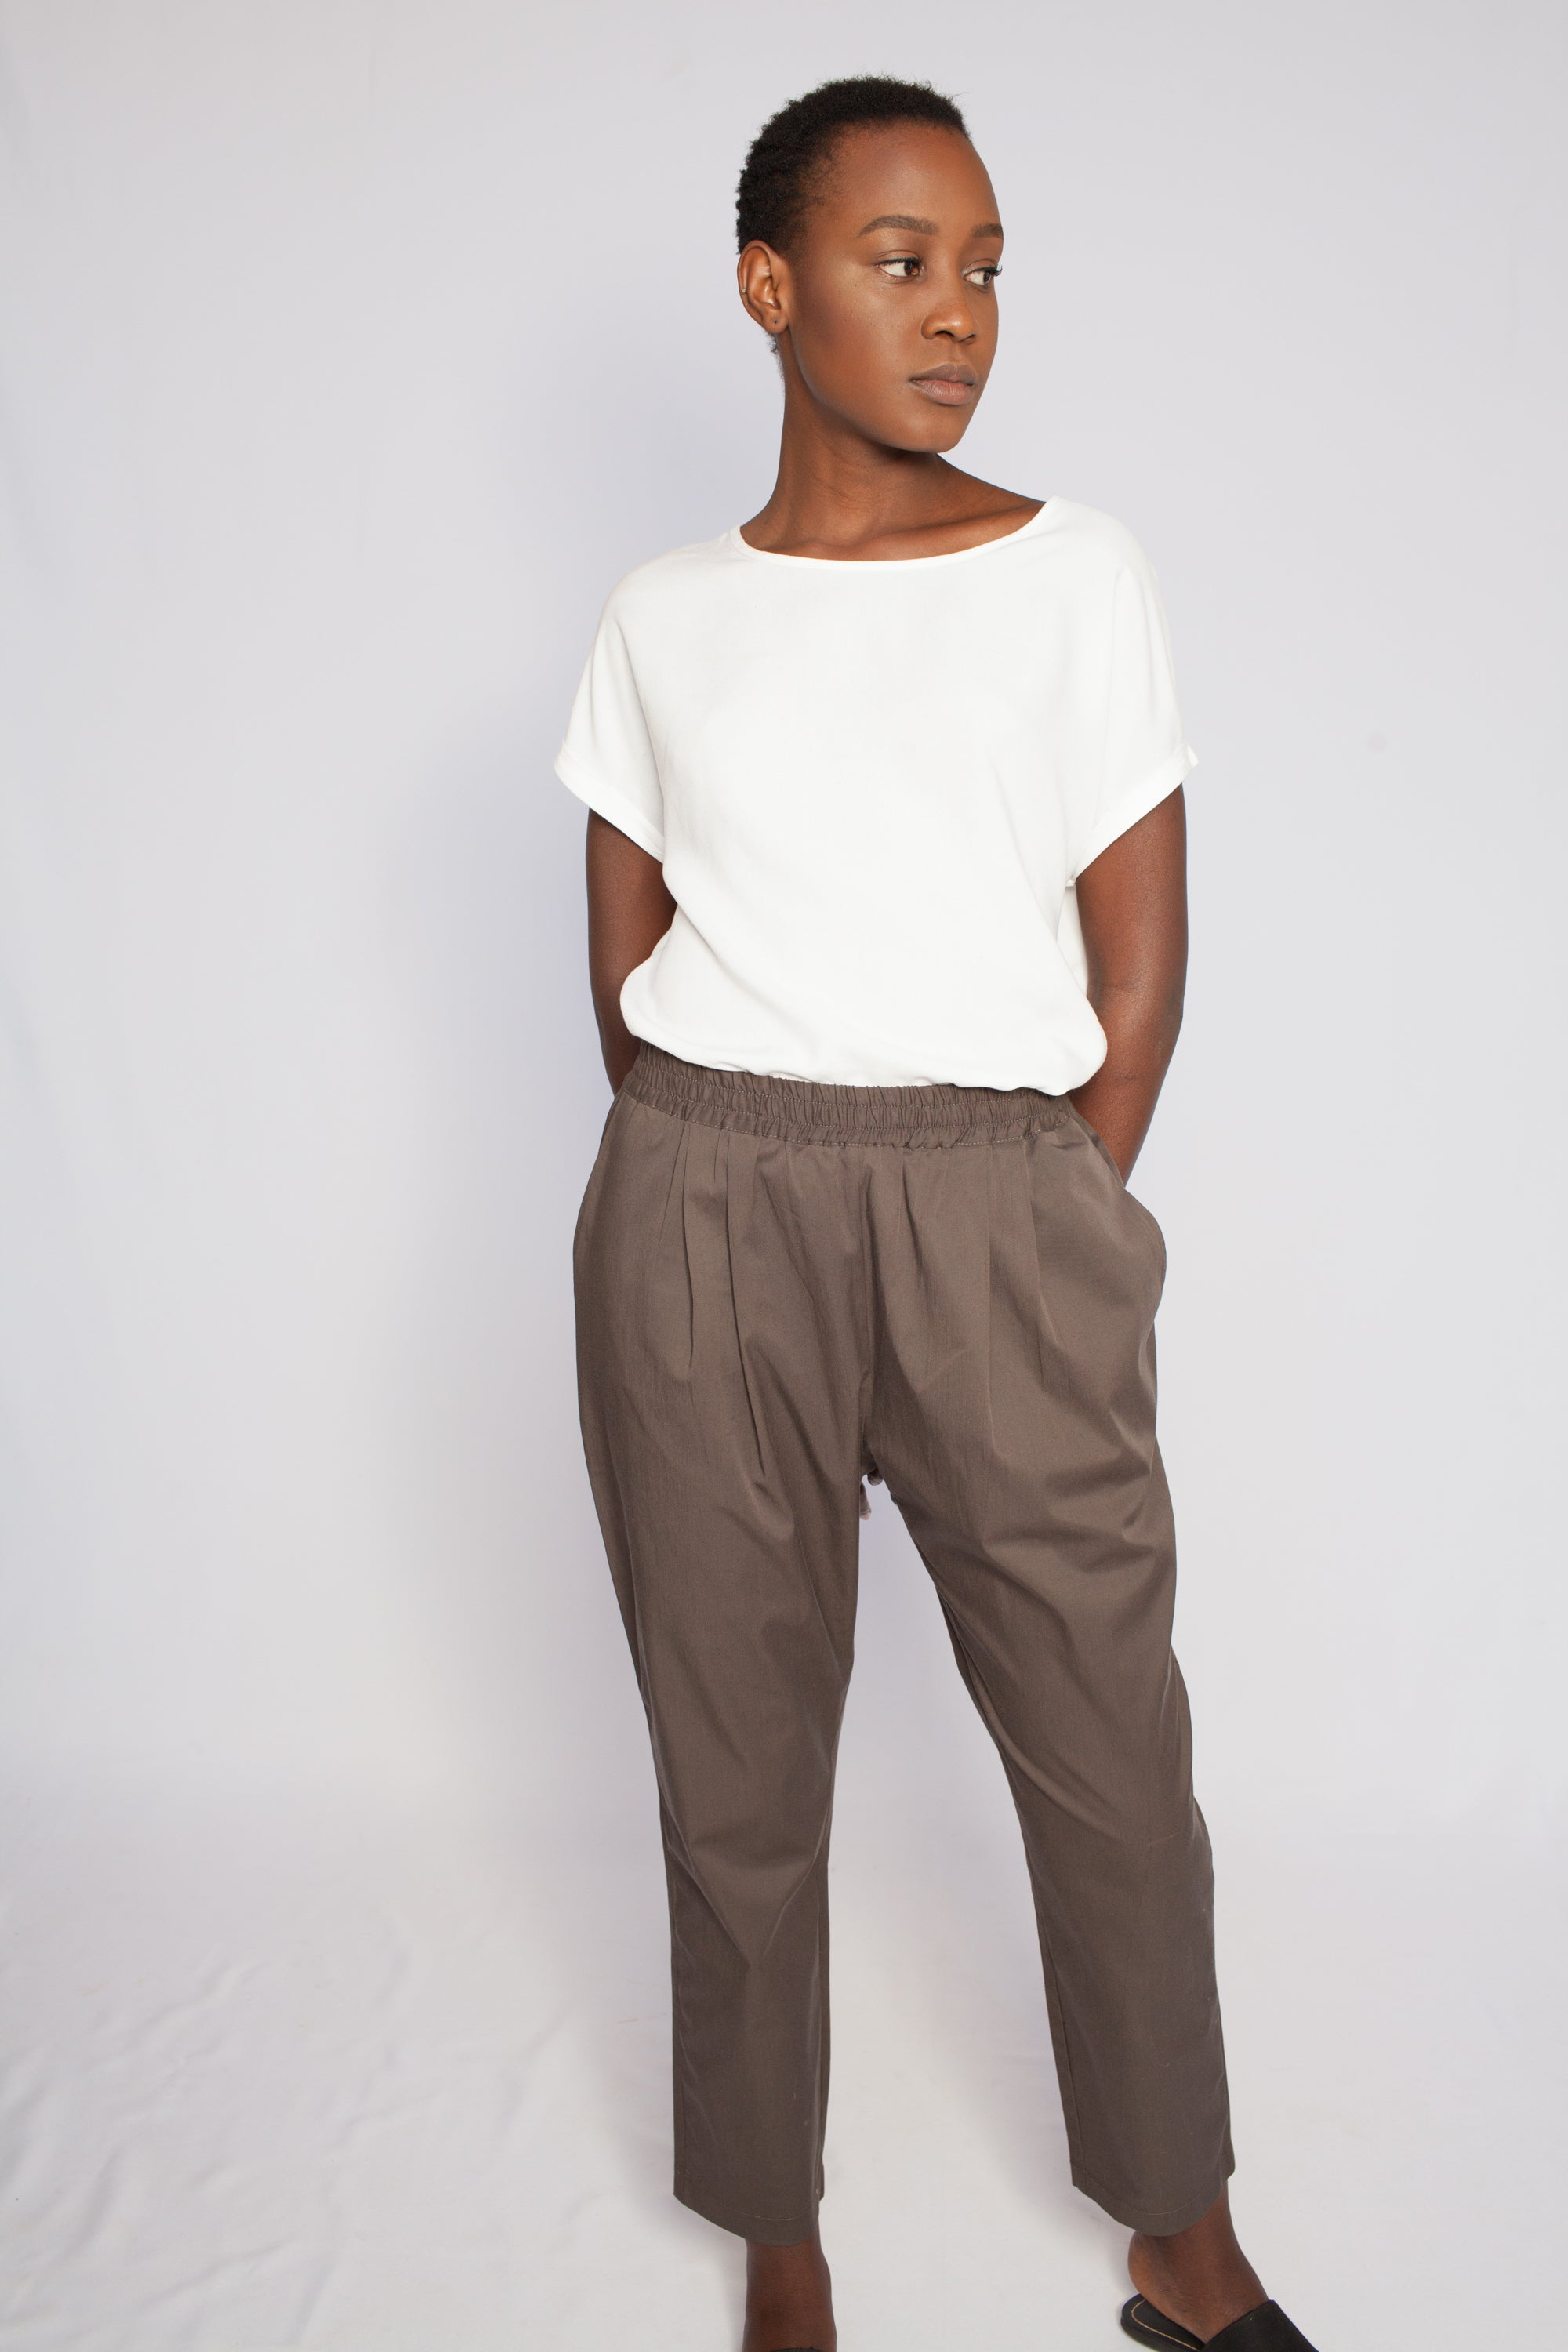 The Rift Valley Pants Safari Brown